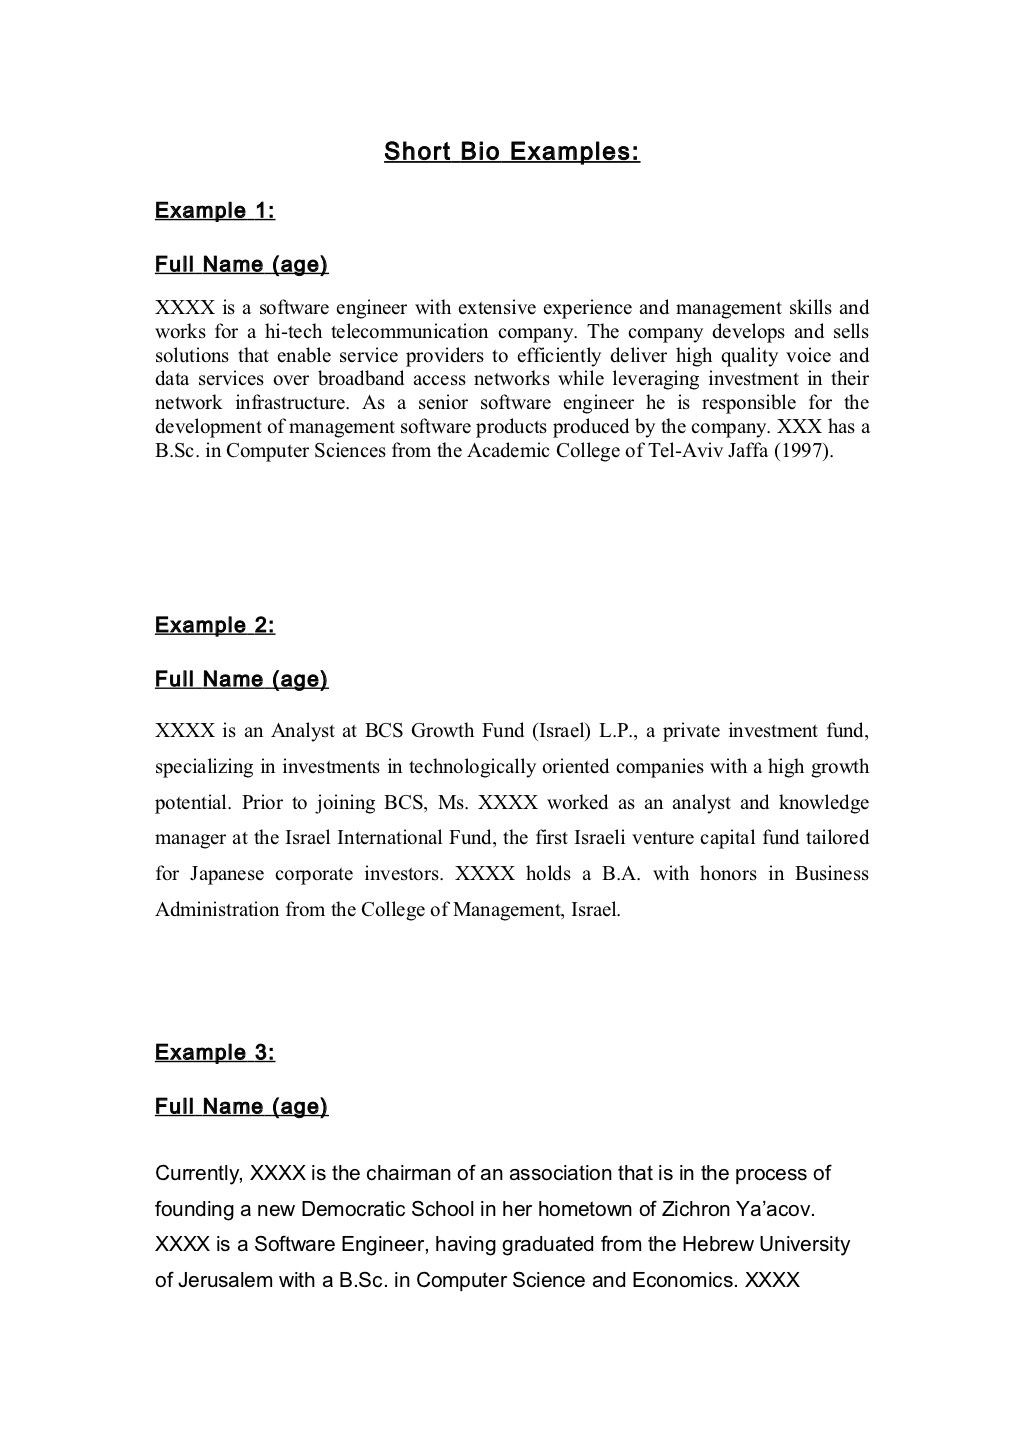 006 Essay Example Short Breathtaking Examples For Students Argumentative High School Large